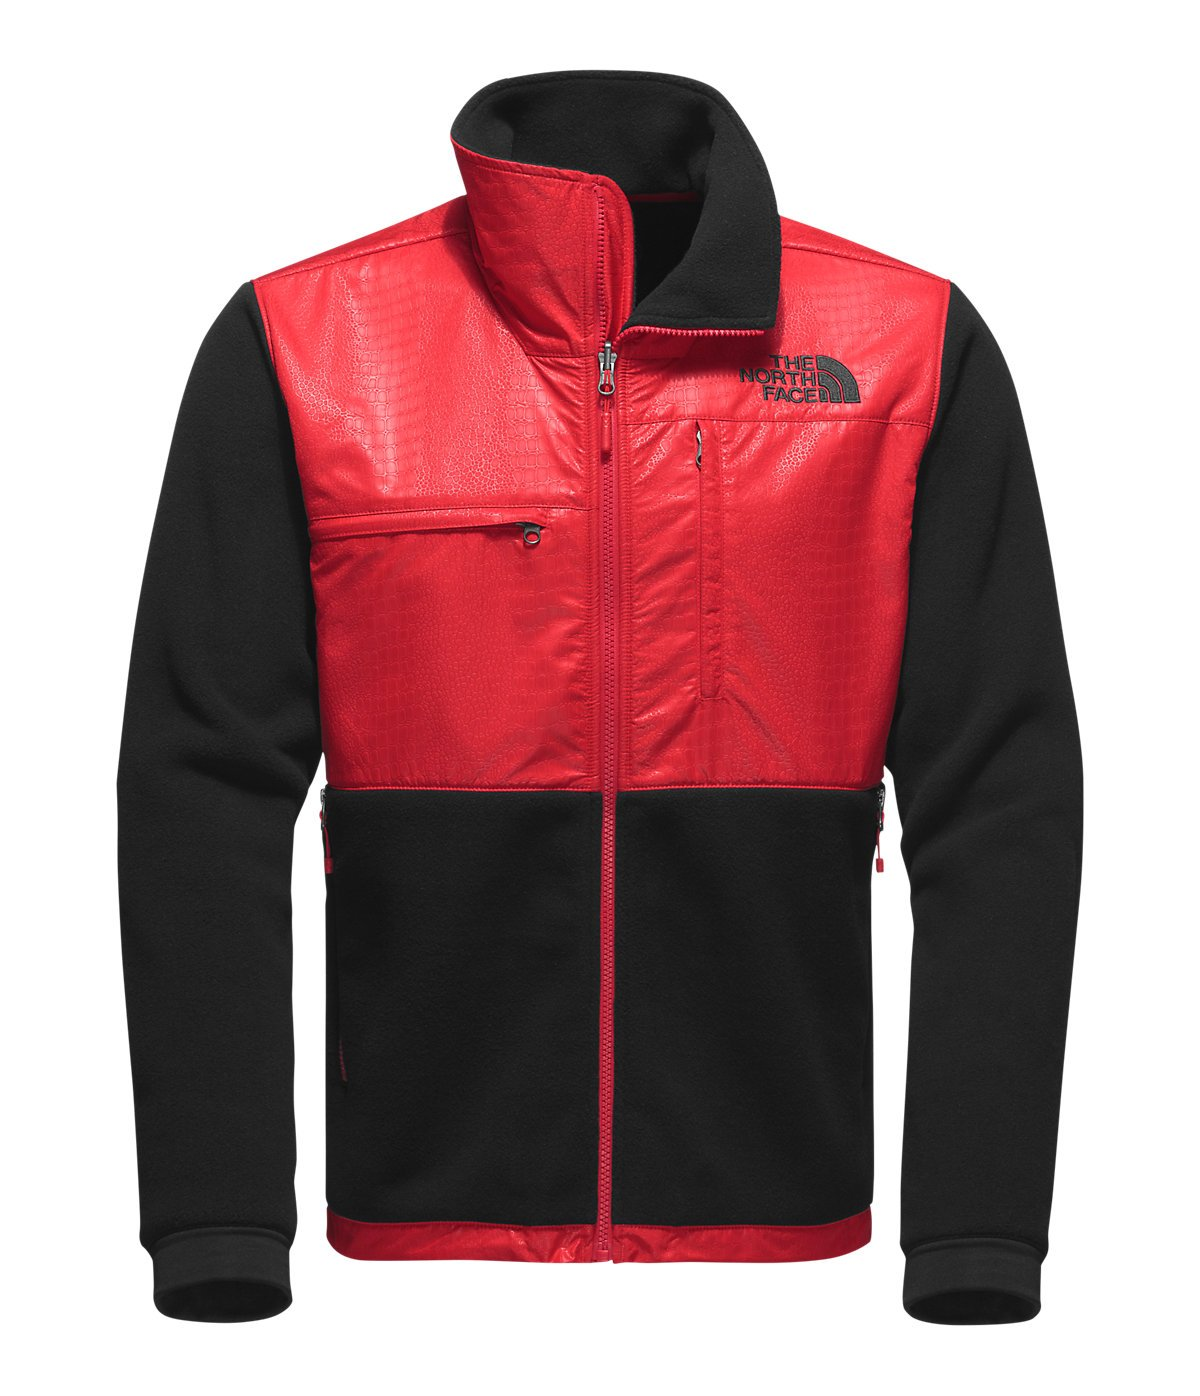 The North Face Denali 2 Jacket - Men's Recycled TNF Black/Red Croc Embossed Large